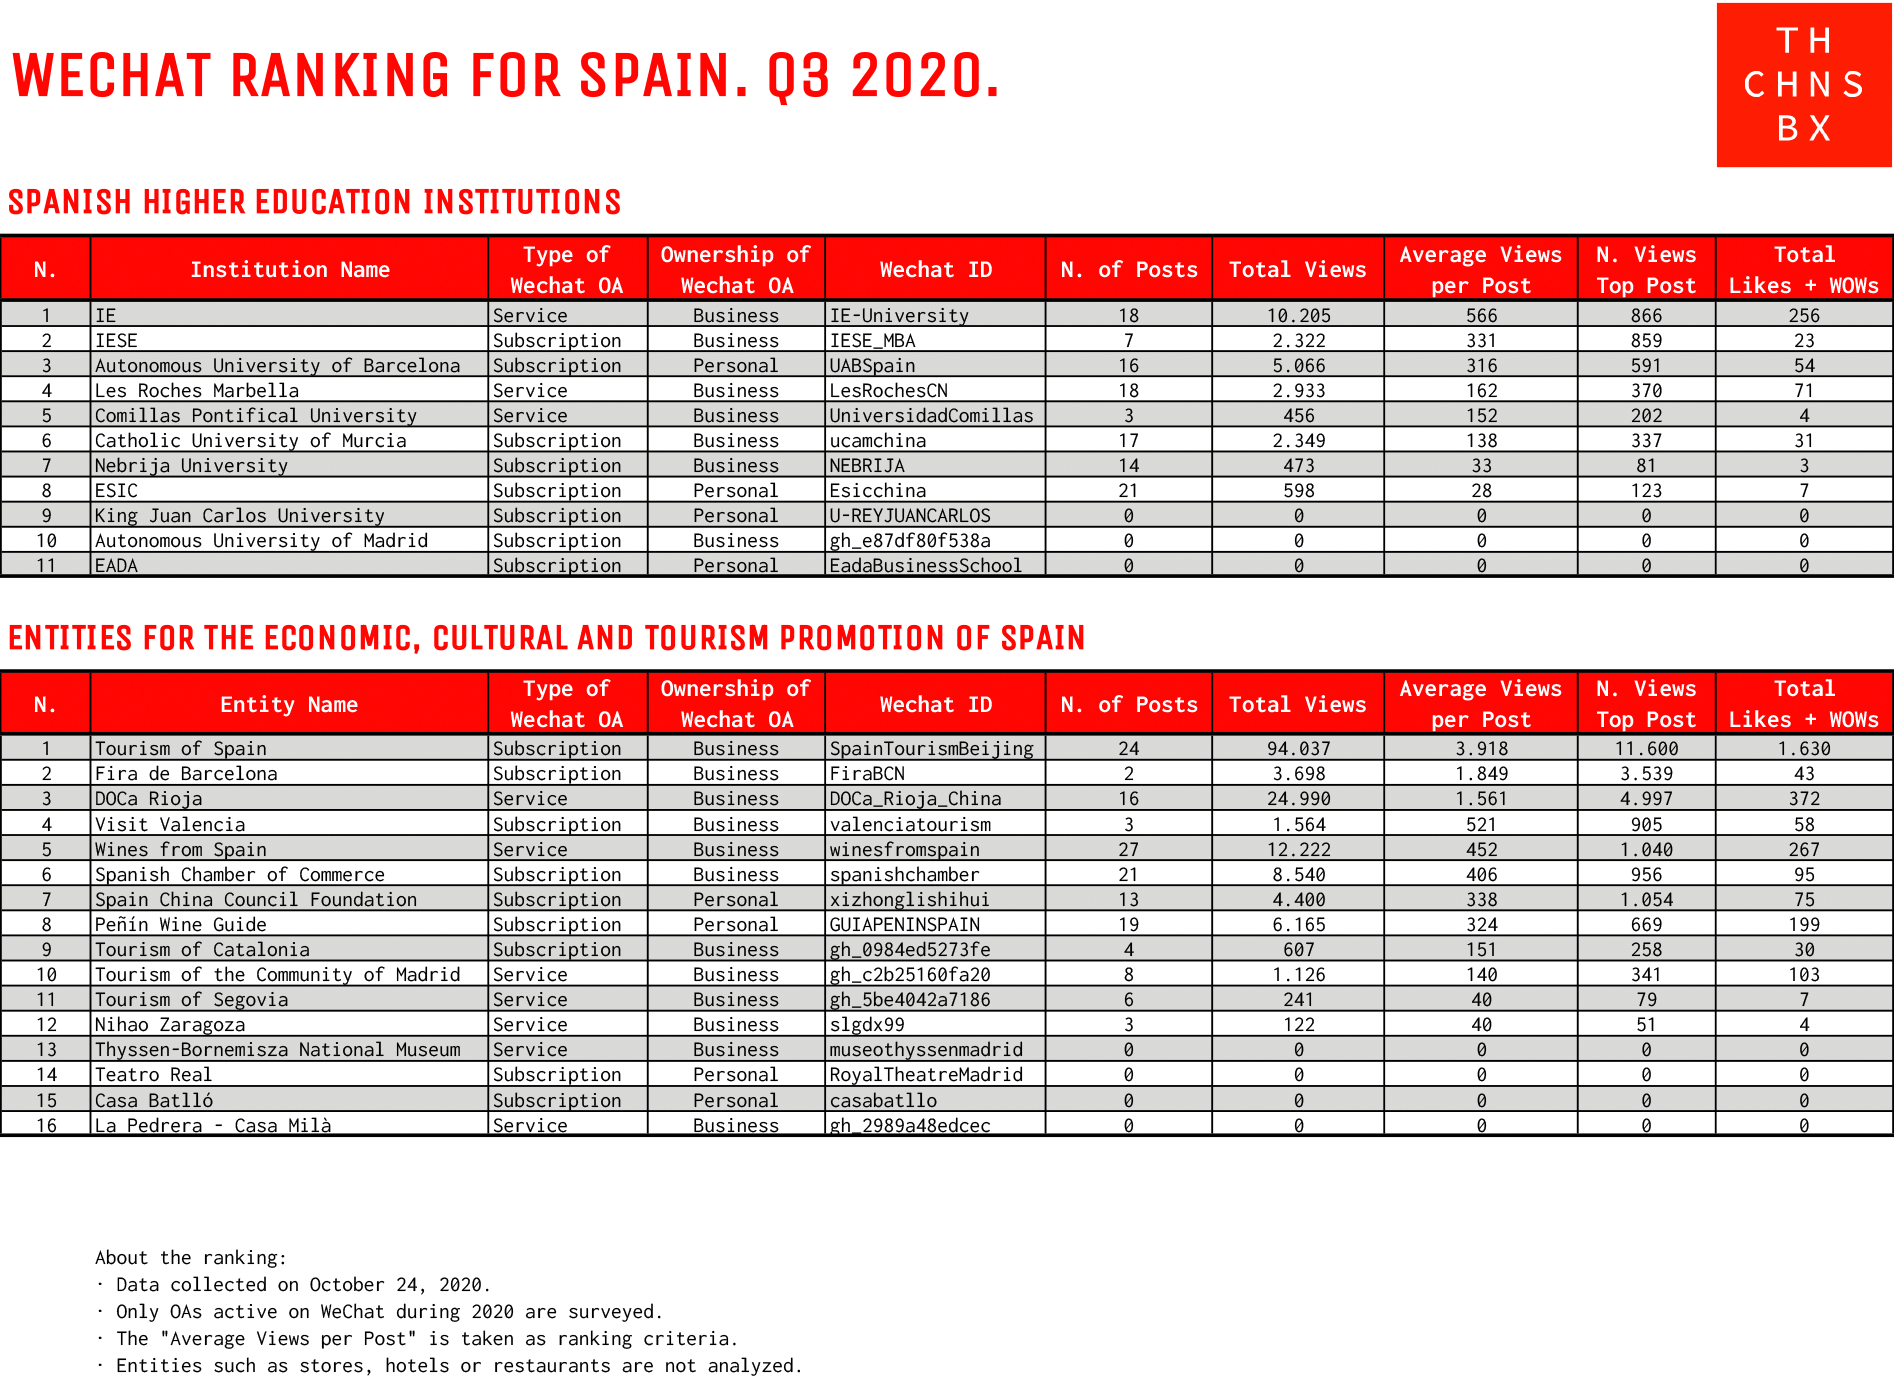 WeChat ranking for Spain Q3 2020